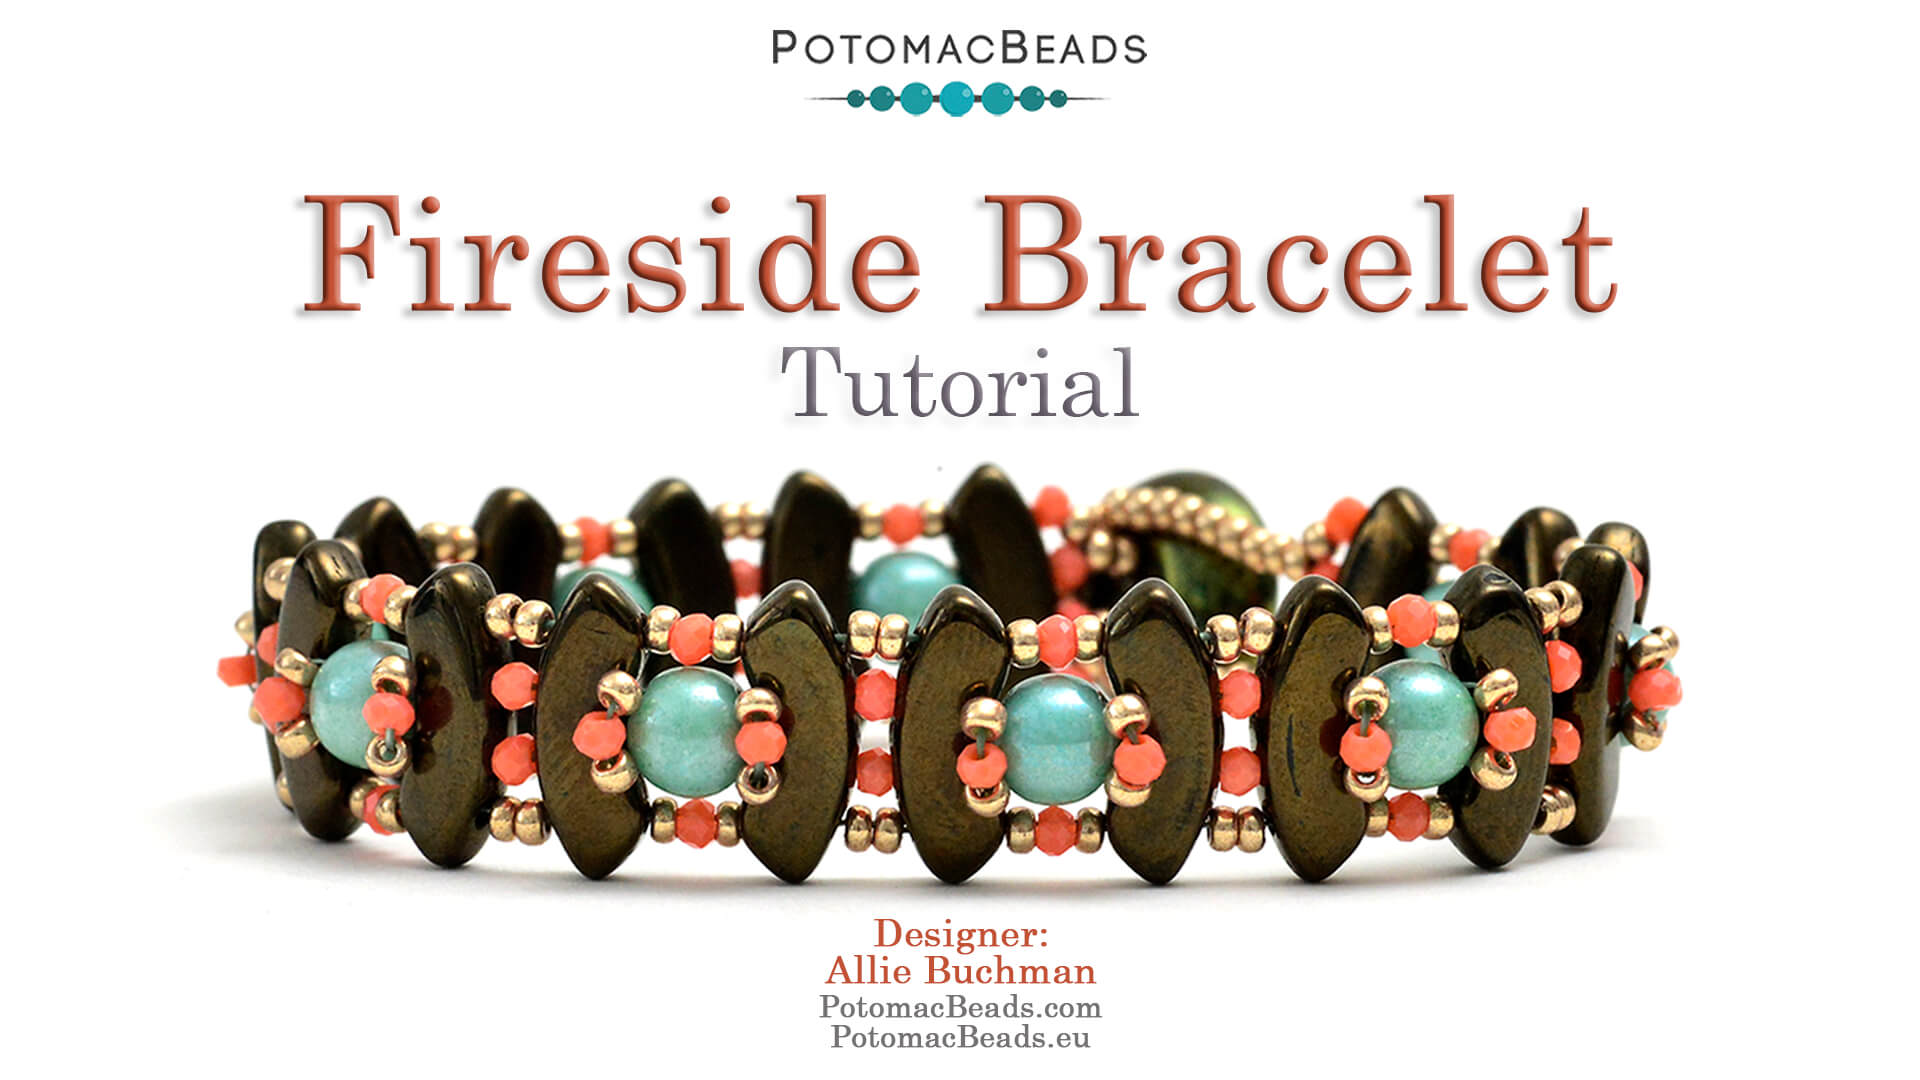 How to Bead Jewelry / Videos Sorted by Beads / QuadBow & PieDuo Bead Videos / Fireside Bracelet Tutorial